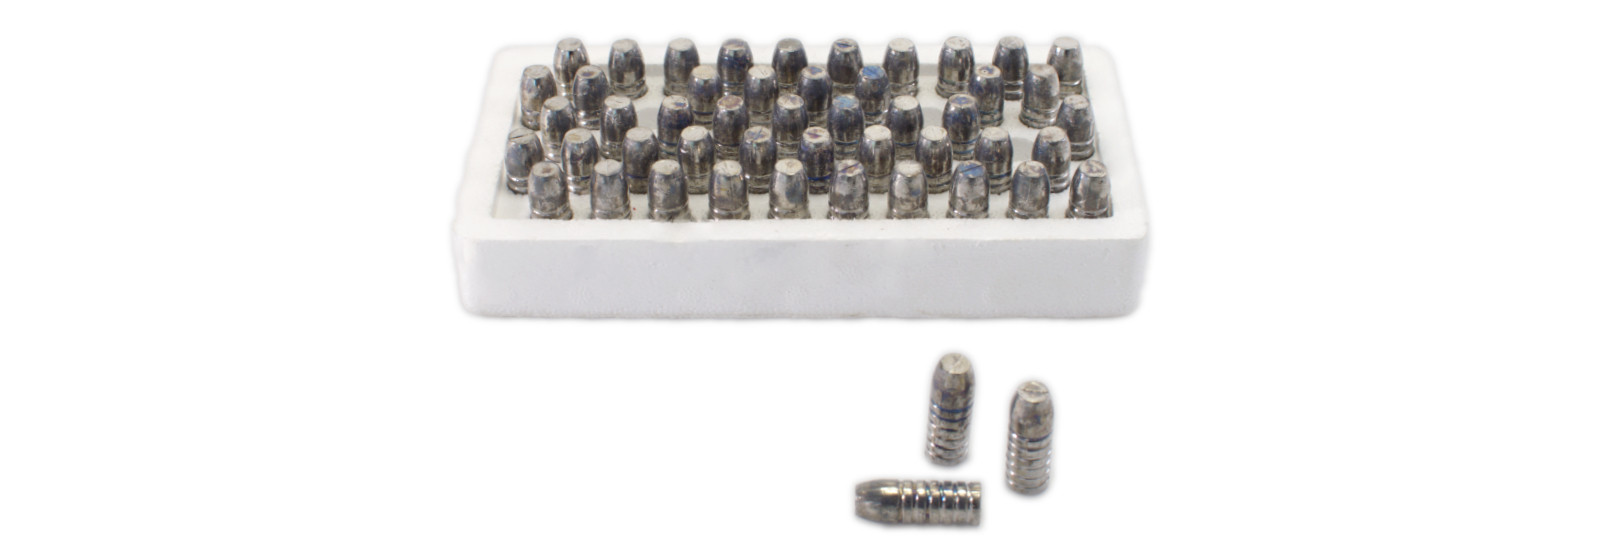 Set 50 conical bullets for muzzleloading